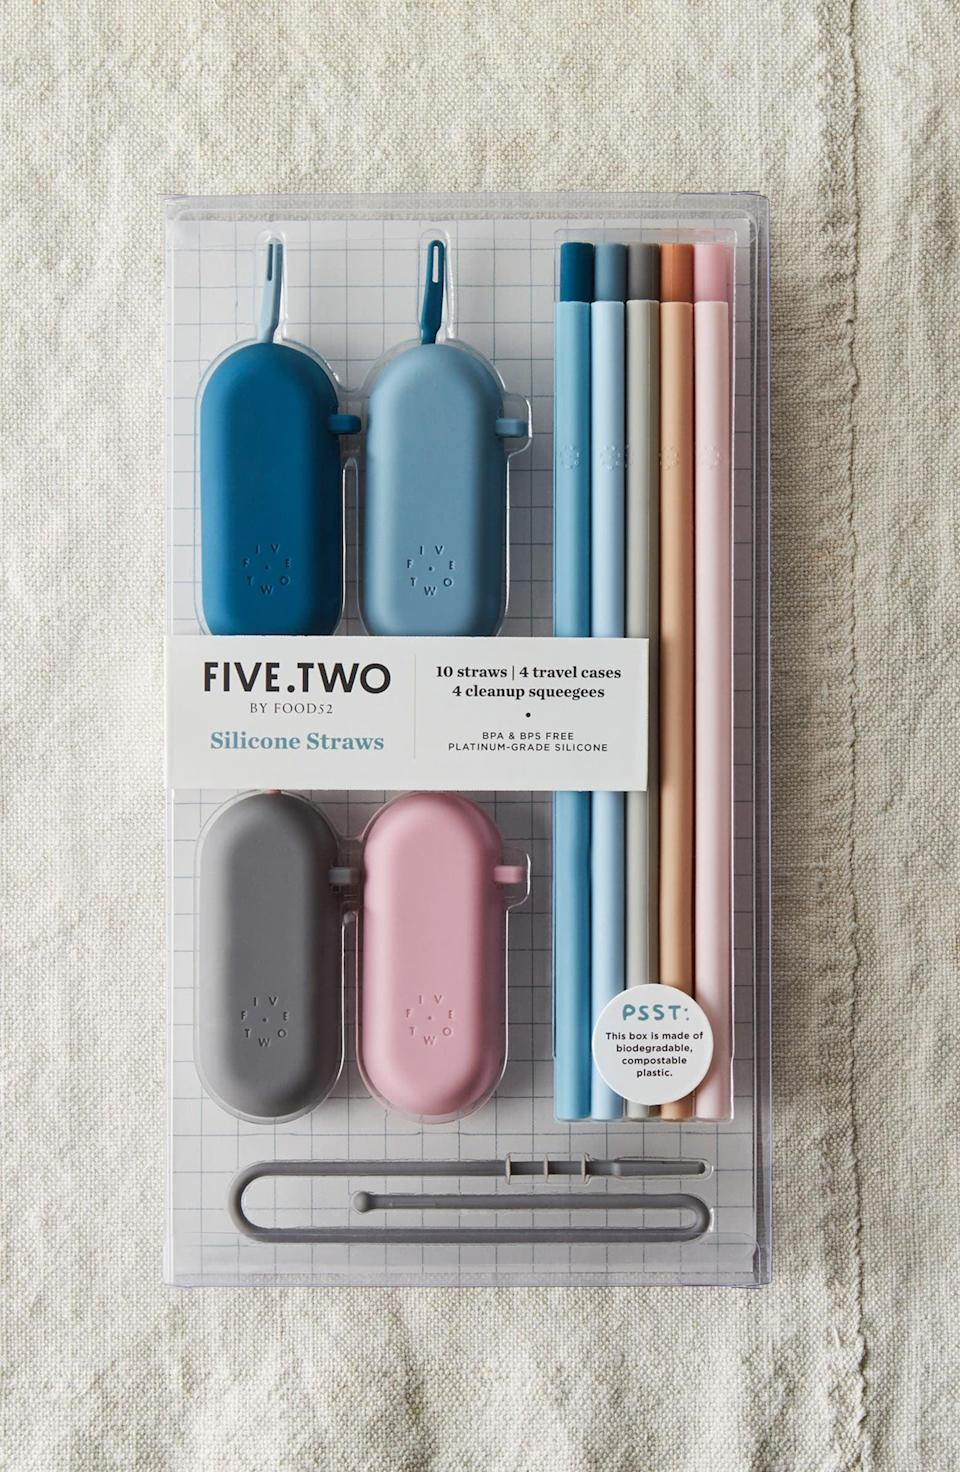 <p>Help them ditch plastic with this <span>Five Two by Food52 Pack of 10 Silicone Straws &amp; Travel Cases</span> ($25) set.</p>